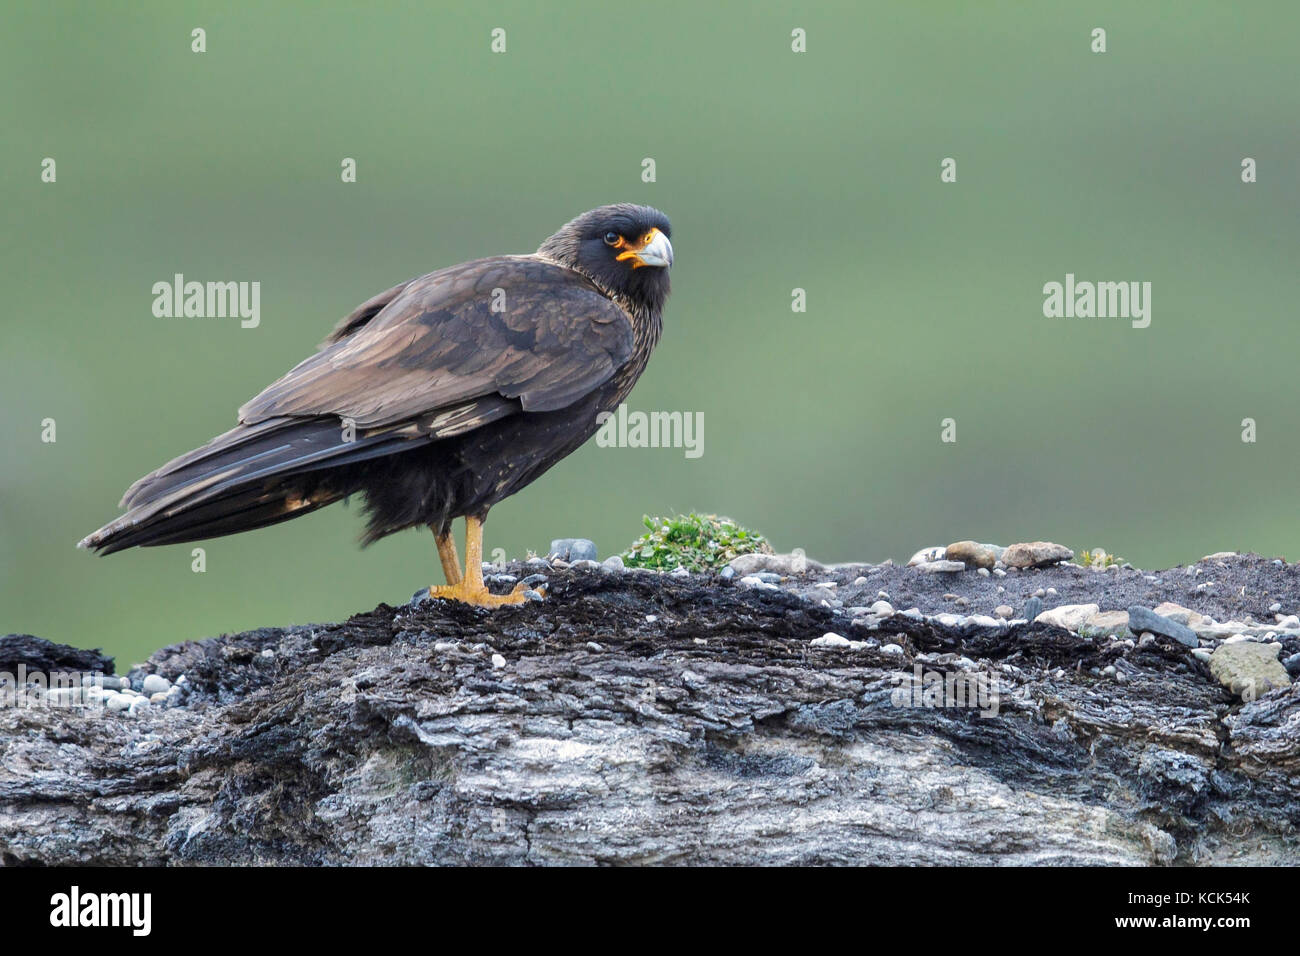 Striated Caracara (Phalcoboenus australis) perched on a rock in the Falkland Islands. Stock Photo